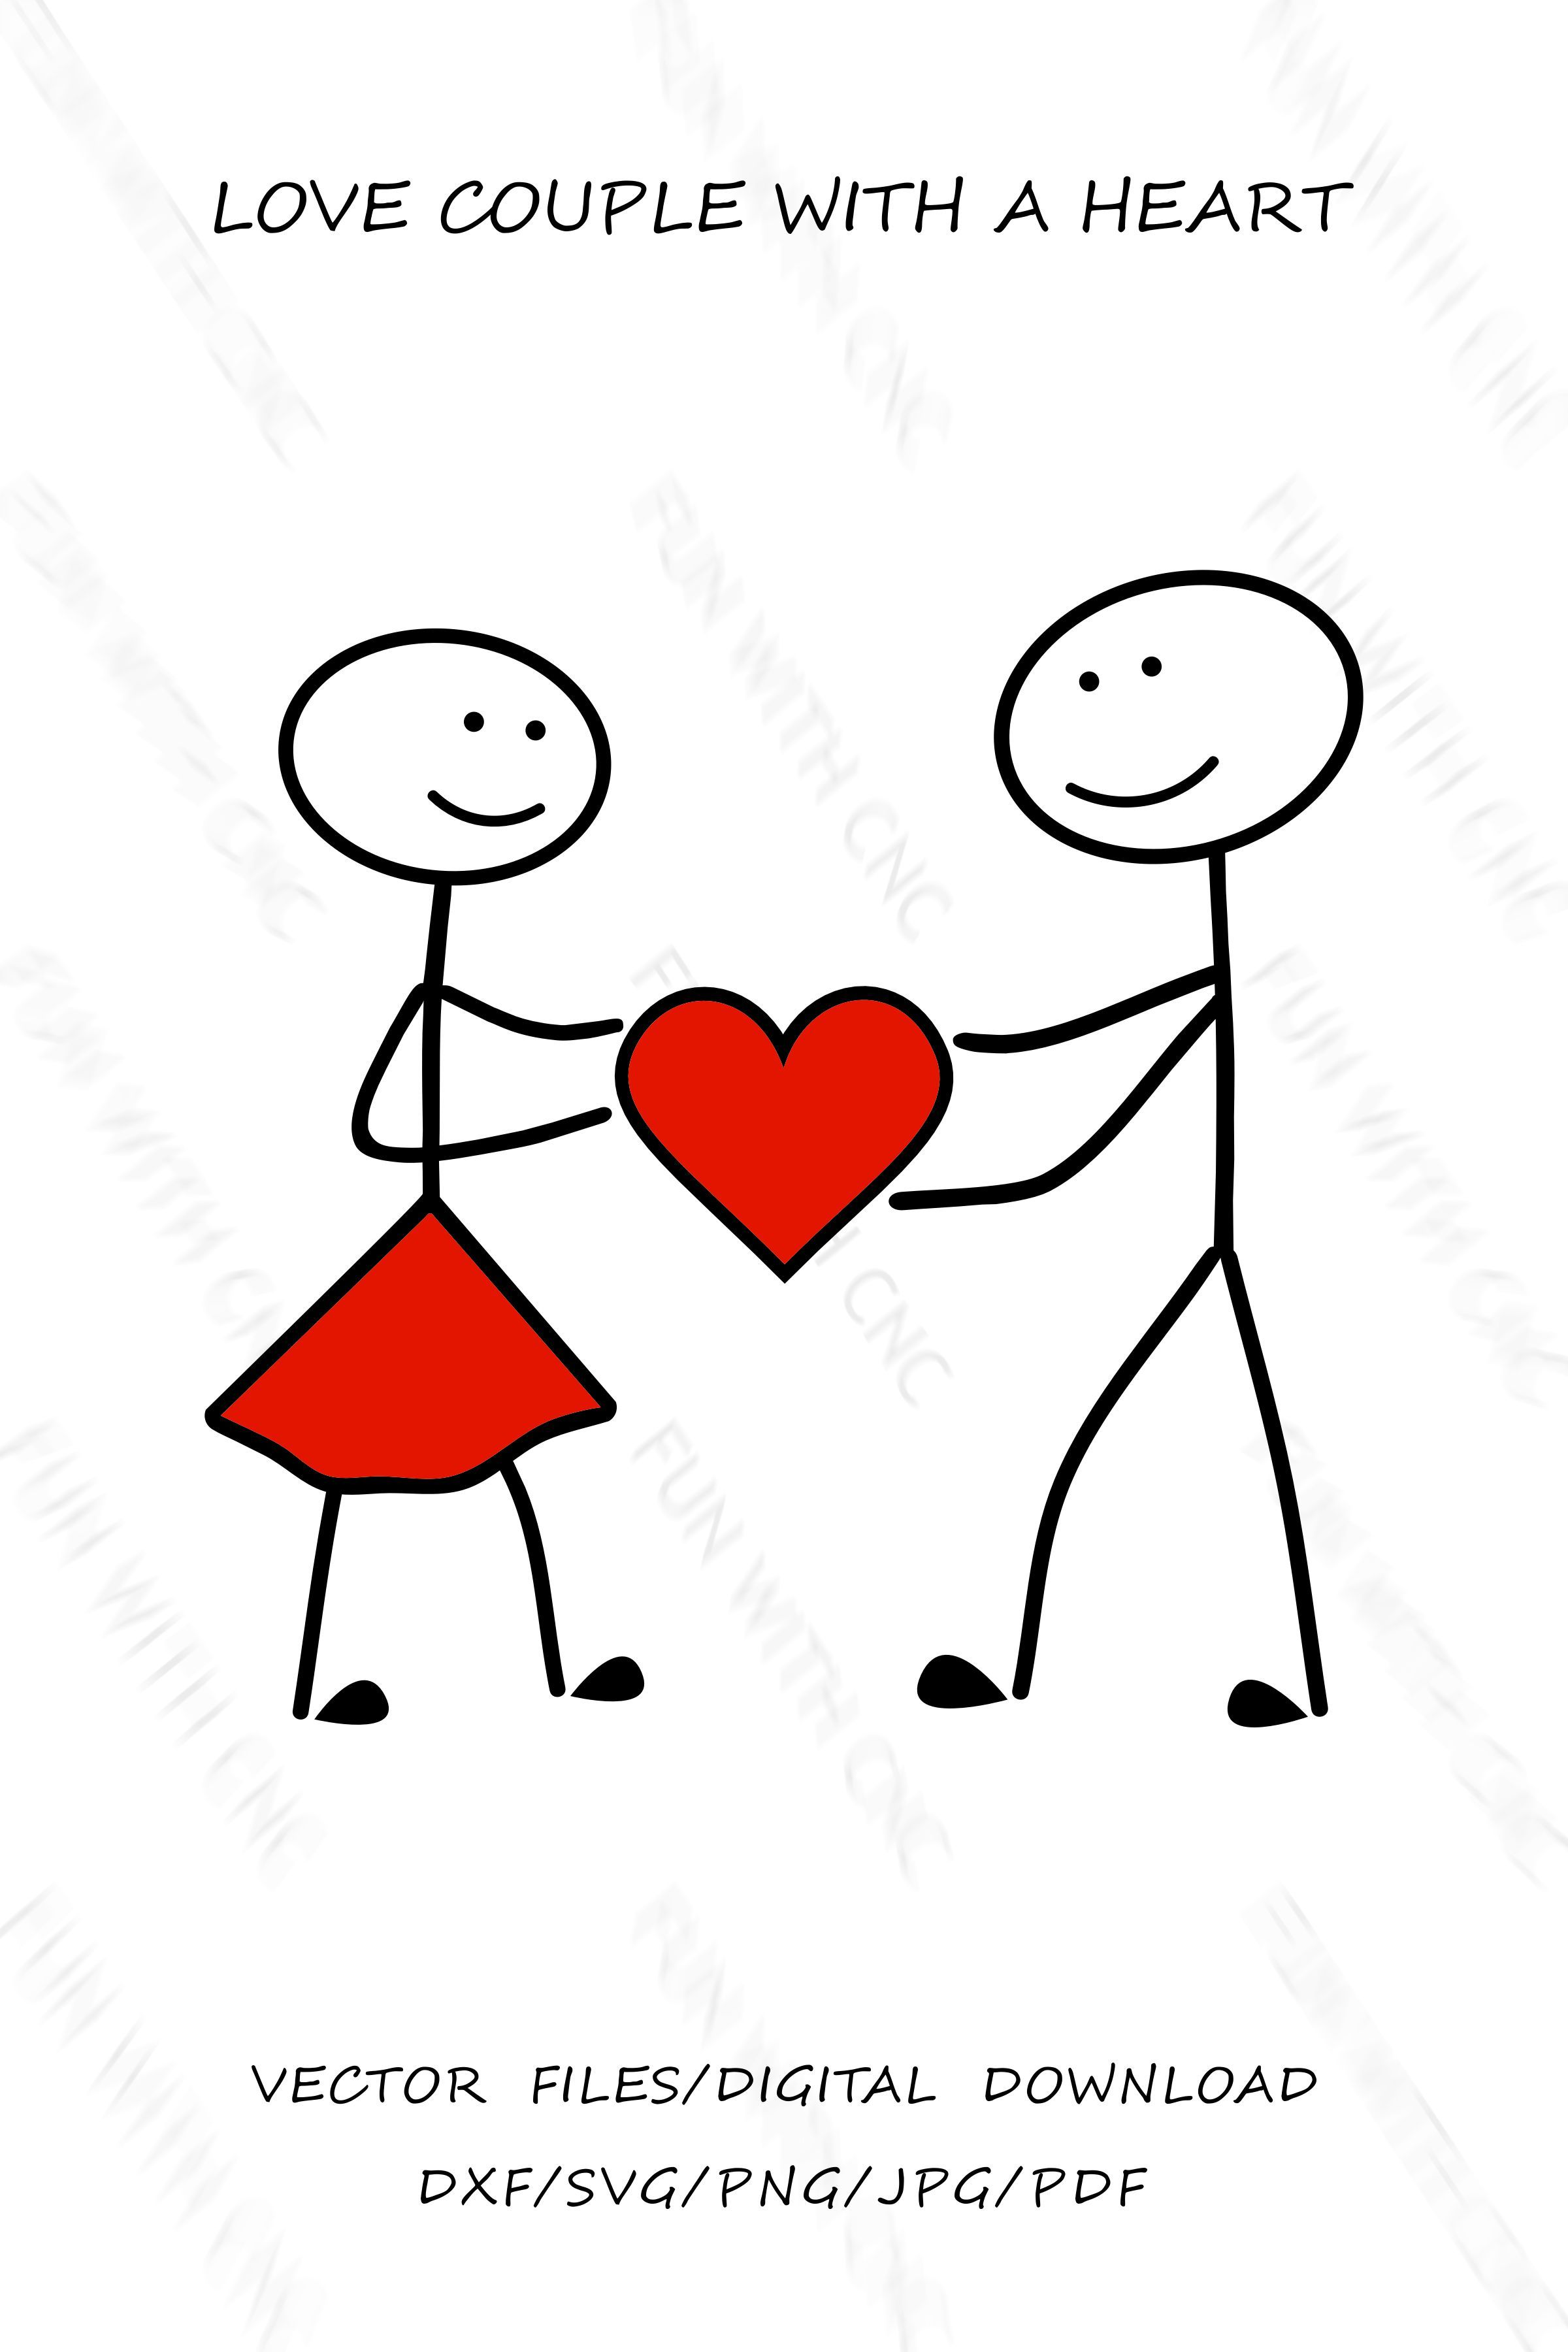 Stickman In Love Stick Figures Couple Svg Png Jpg Pdf Etsy In 2021 Stick Figures Dxf Svg [ 3600 x 2400 Pixel ]